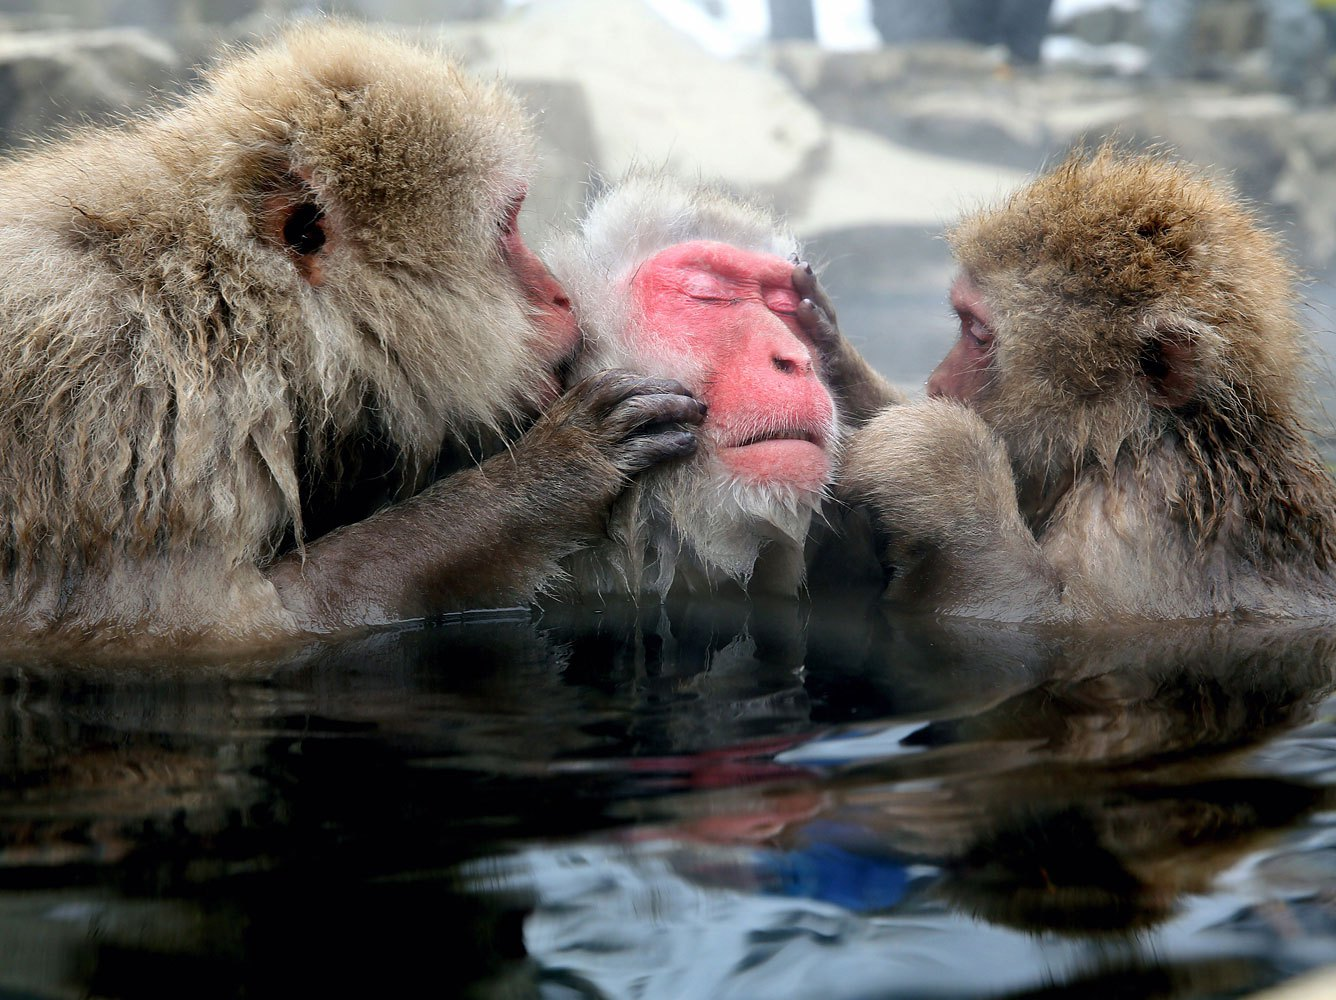 Japanese Macaque monkeys groom each other and relax in a hot spring at the Jigokudani, or Hell's Valley Monkey Park on Jan. 8, 2014 in Yamanouchi, Nagano, Japan.